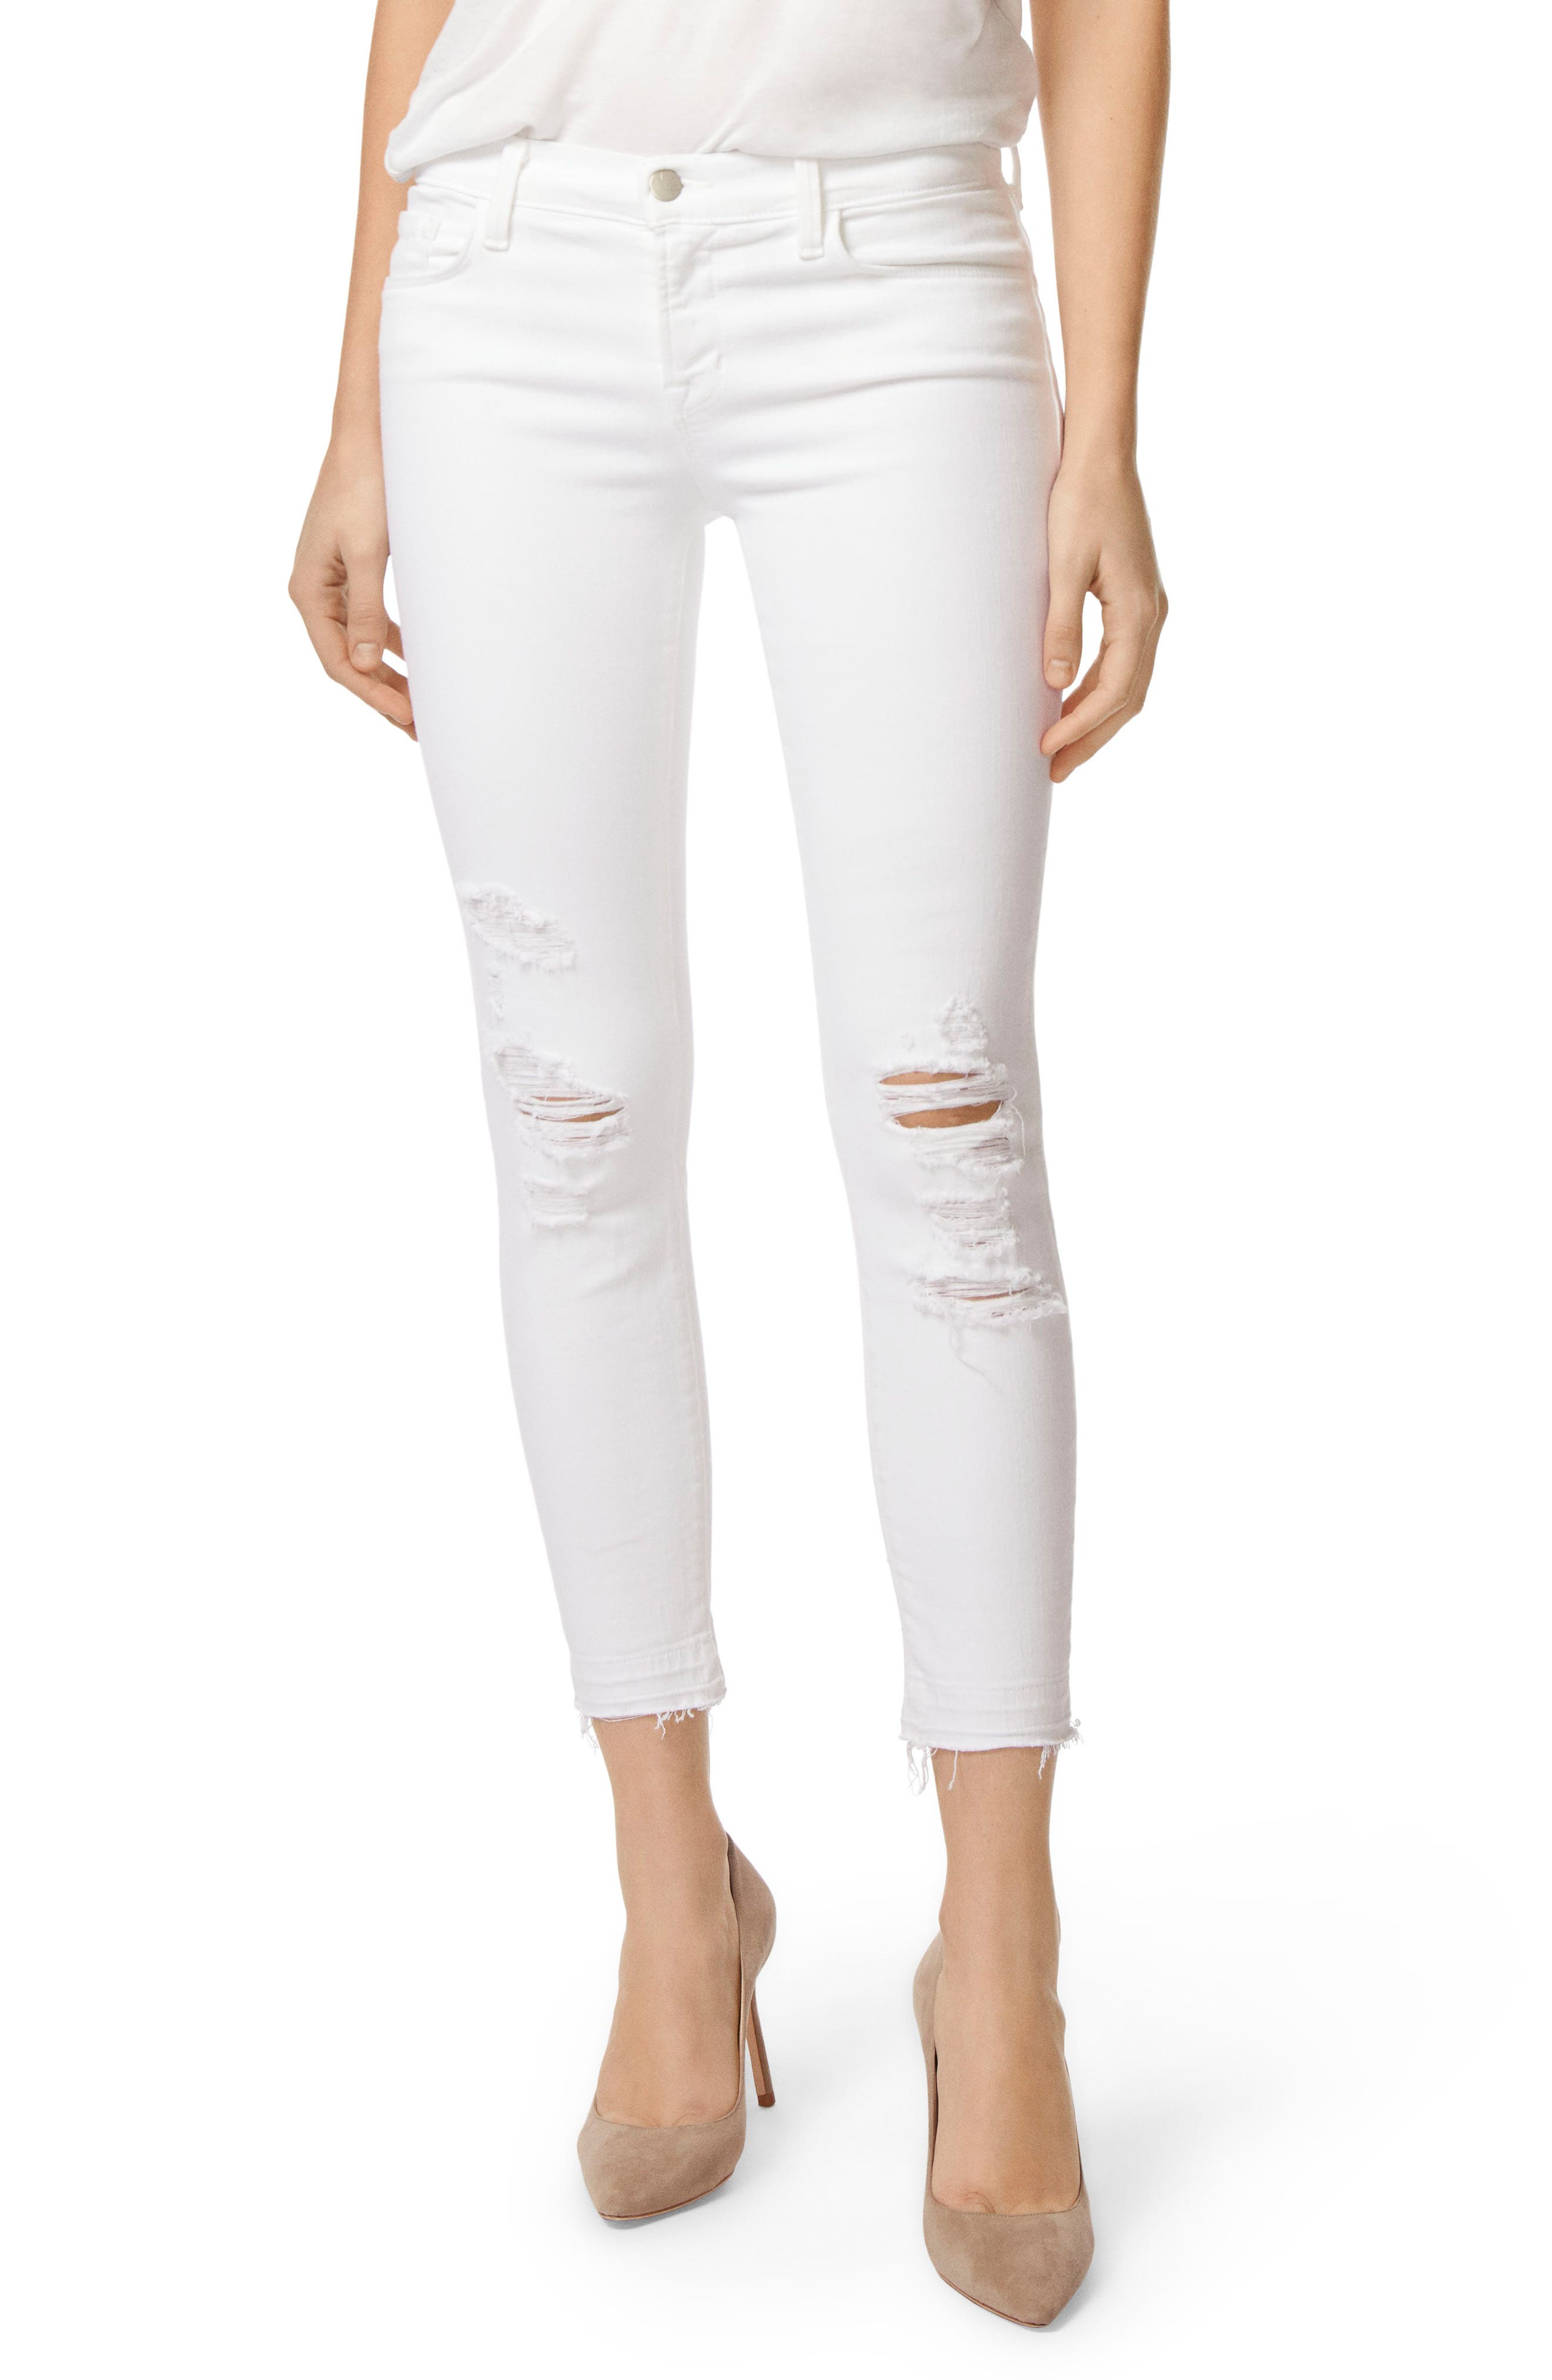 9326 Low Rise Crop Skinny Jeans,                         Main,                         color, Demented White Destructed